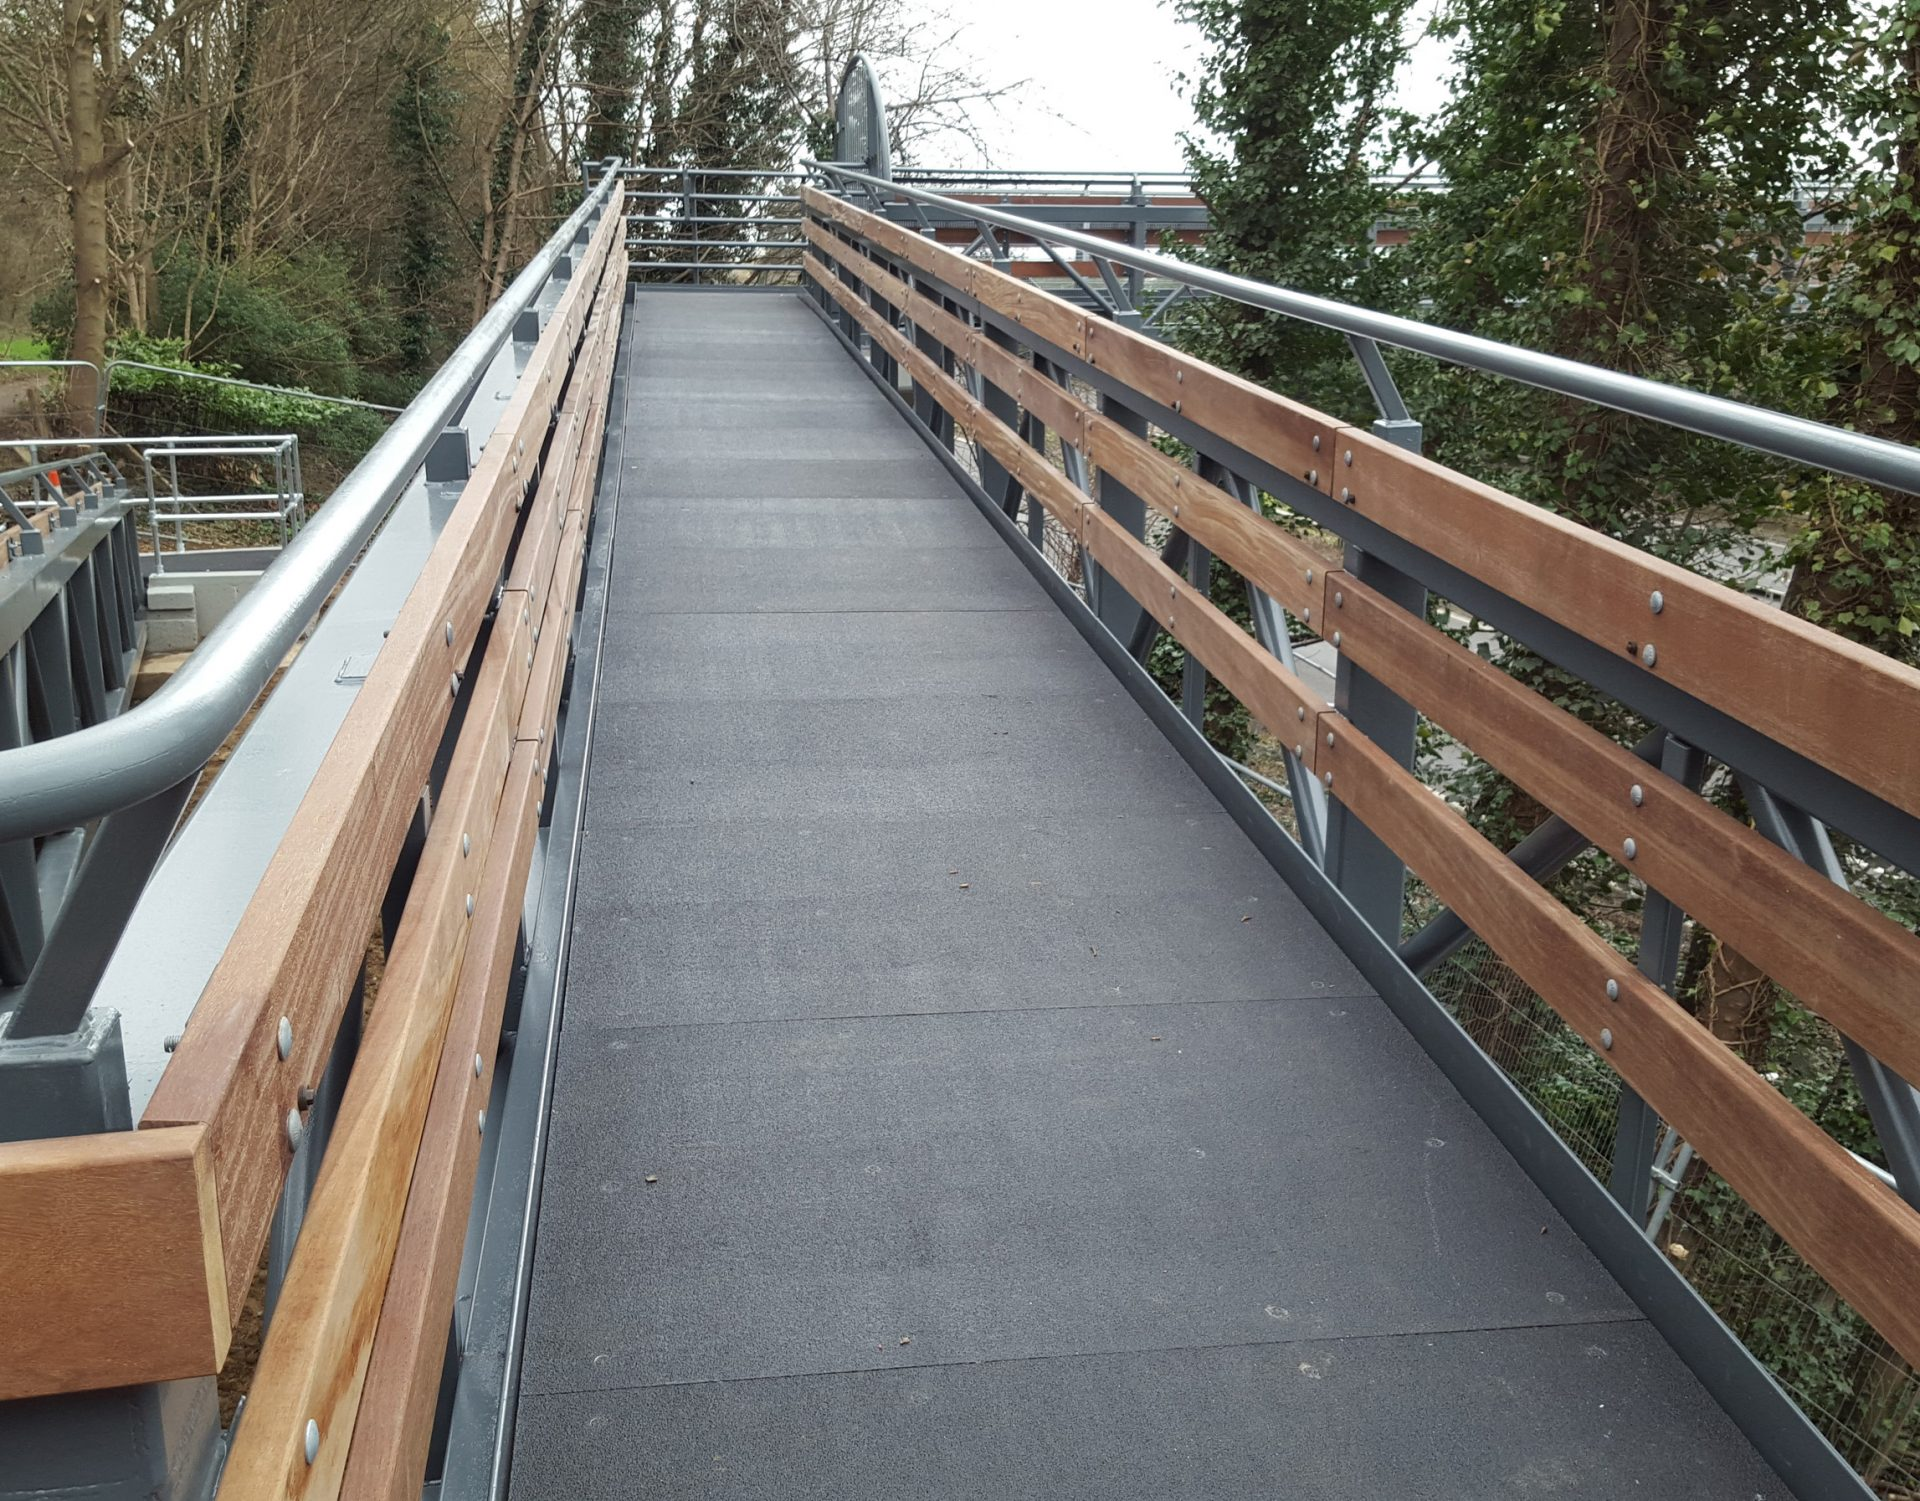 GRP deck pedestrian access walkway retail centre steel structure